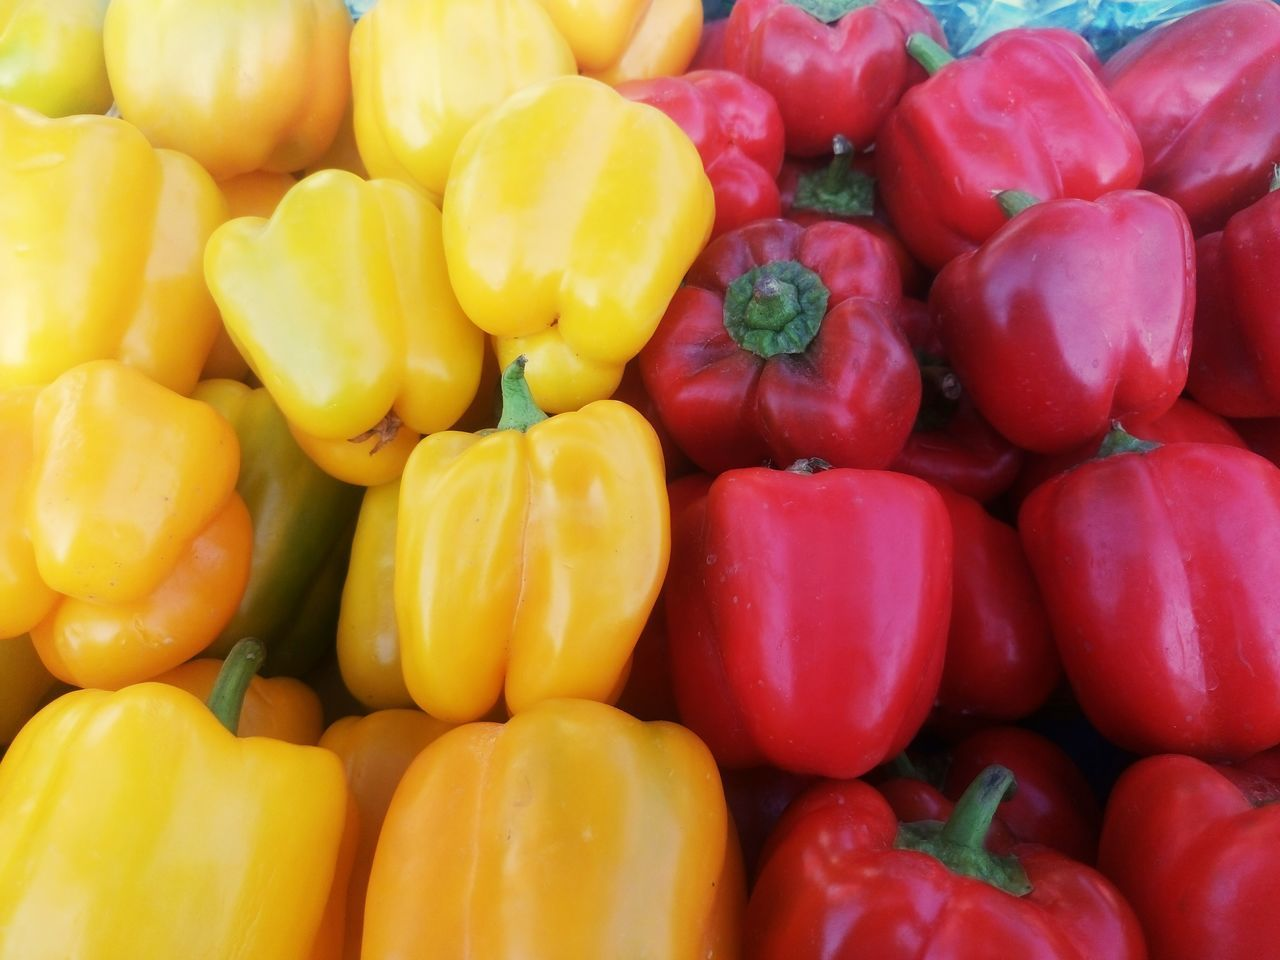 Healthy Eating Food Food And Drink Freshness Healthy Lifestyle Market Vegetable No People Variation Red Bell Pepper Full Frame Red Backgrounds Day Multi Colored Close-up Indoors  Nature Supermarket